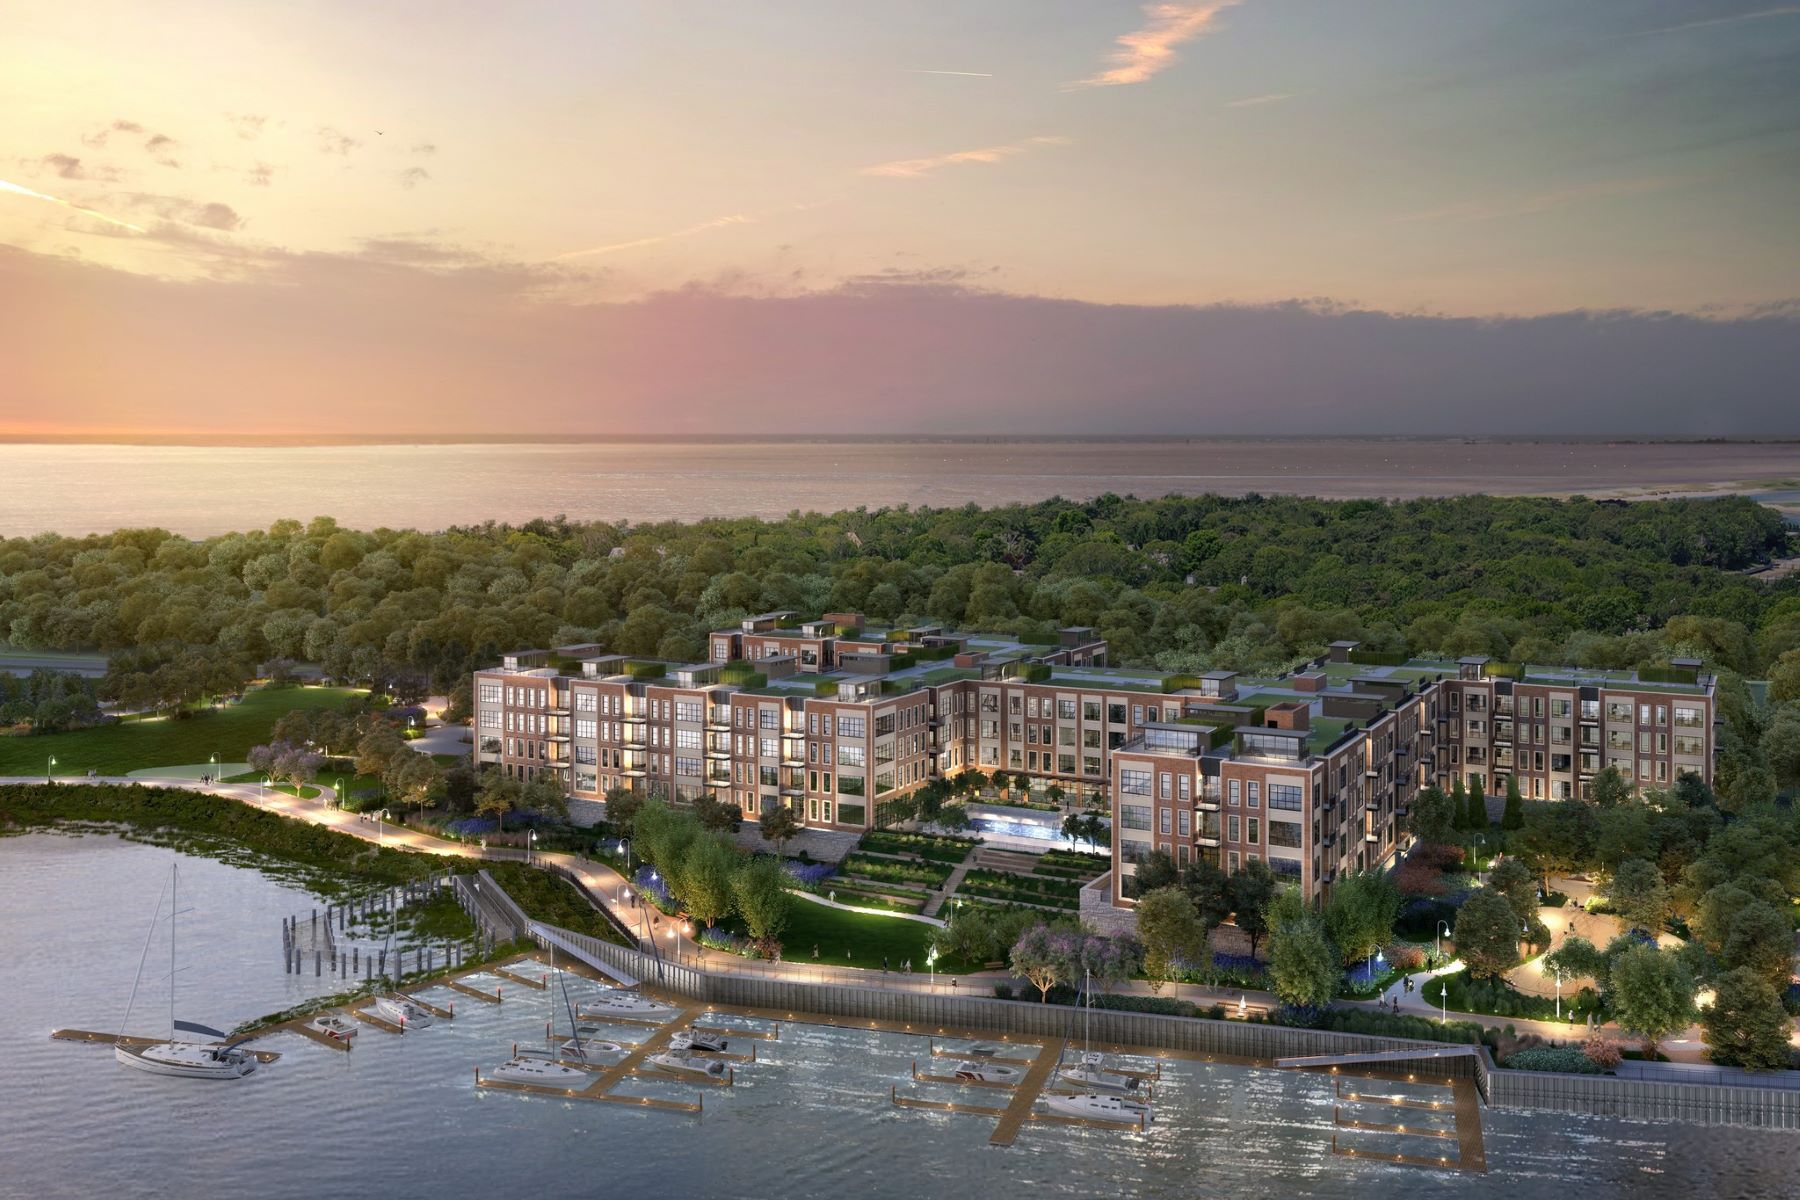 Condominiums for Sale at 100 Garvies Point Rd , 1119, Glen Cove, NY 11542 100 Garvies Point Rd 1119 Glen Cove, New York 11542 United States